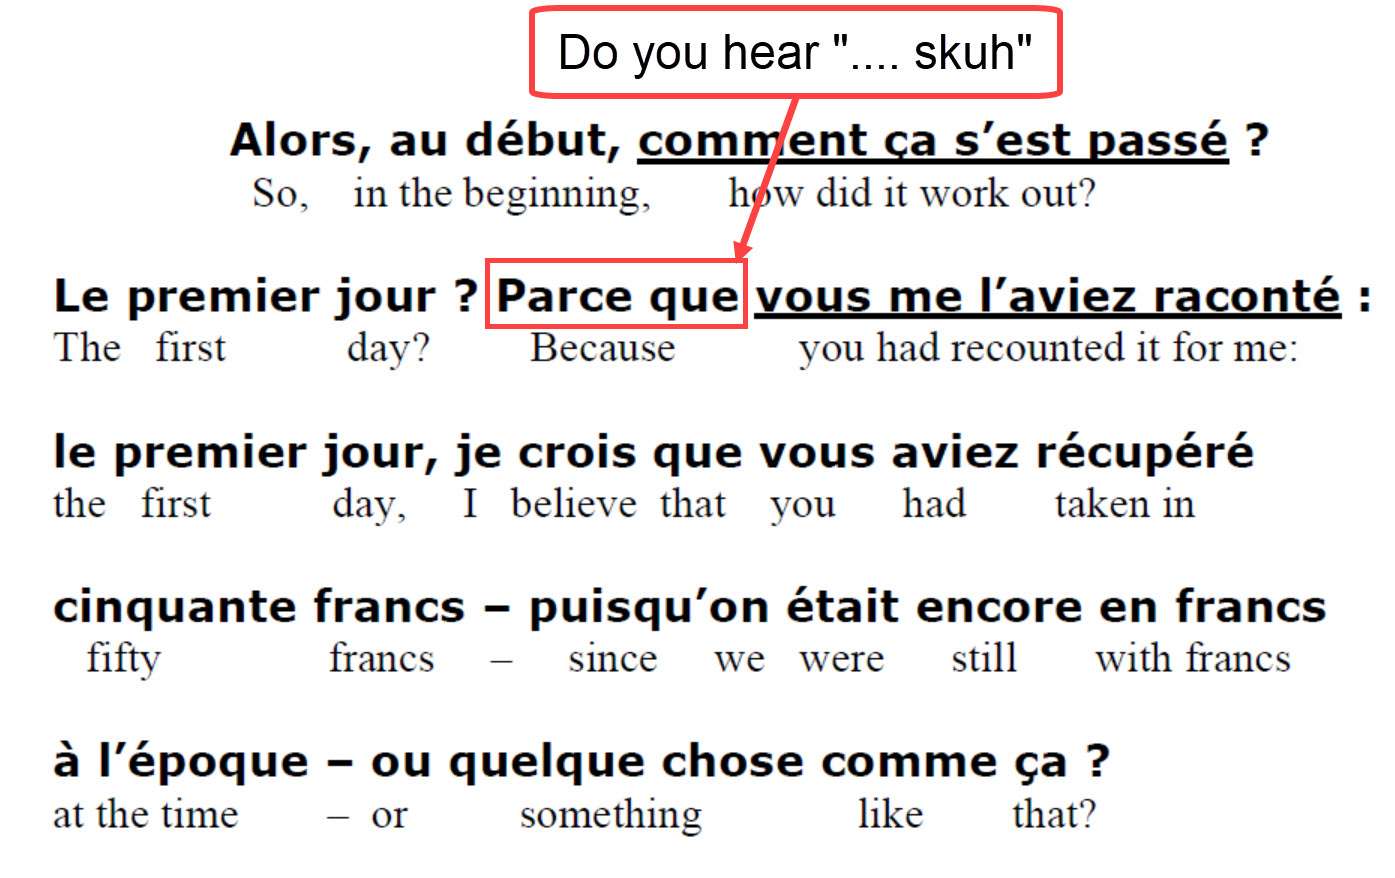 French Listening Comprehension - parce que